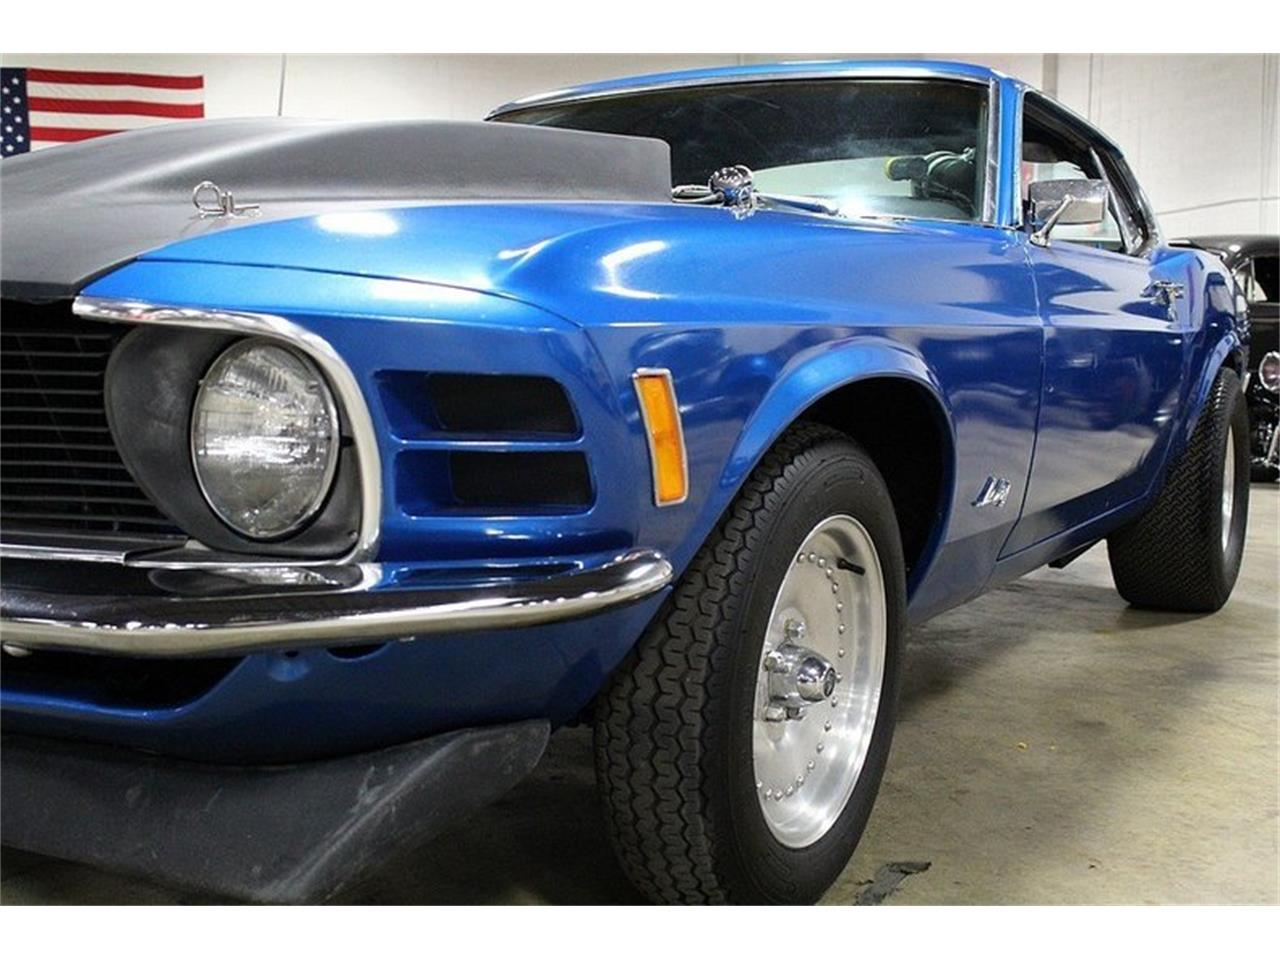 Large Picture of Classic 1970 Ford Mustang located in Michigan - $25,900.00 - MHE4